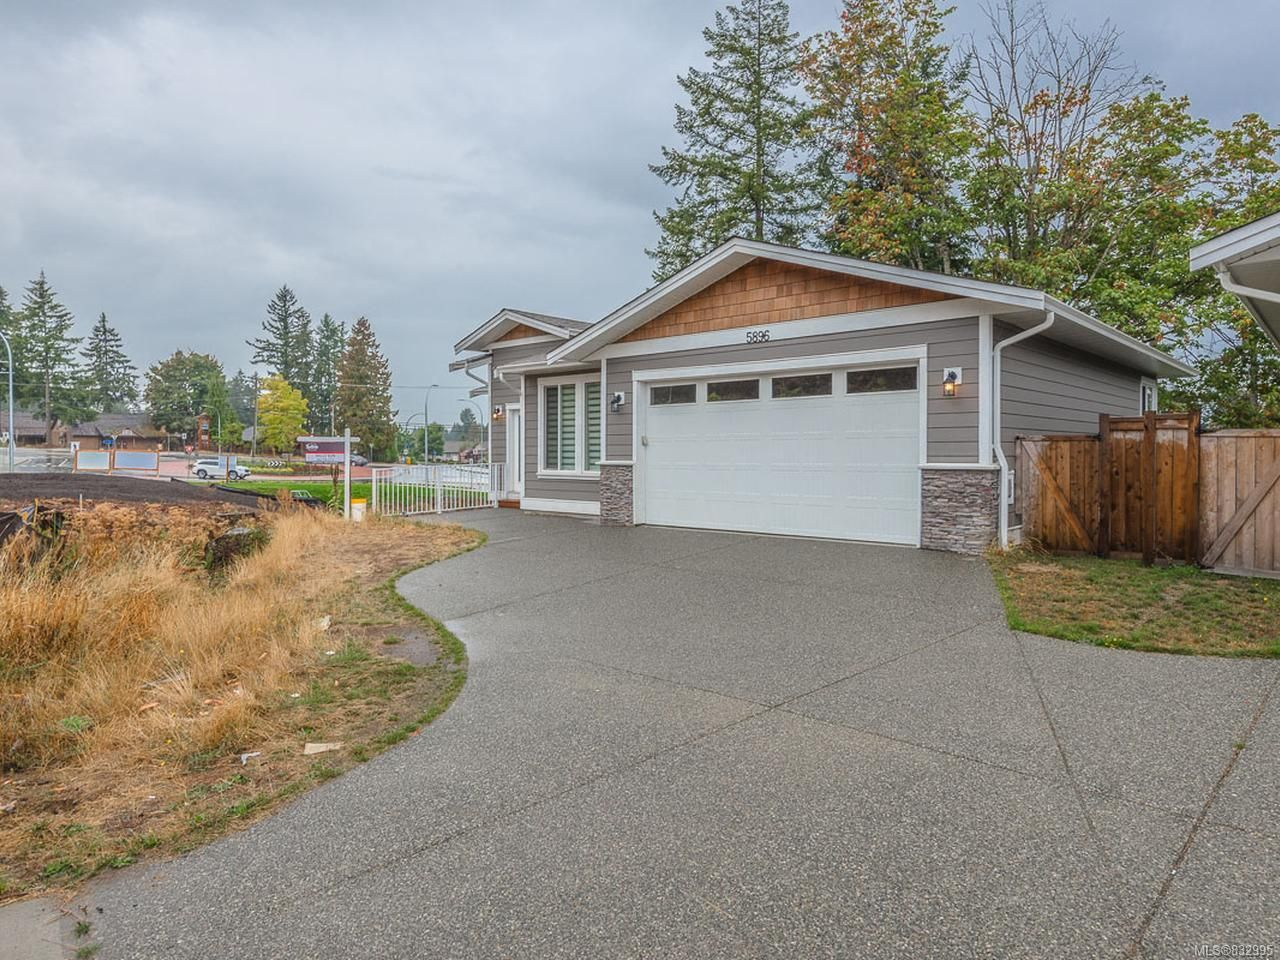 Main Photo: 5896 Linyard Rd in NANAIMO: Na North Nanaimo House for sale (Nanaimo)  : MLS®# 832995